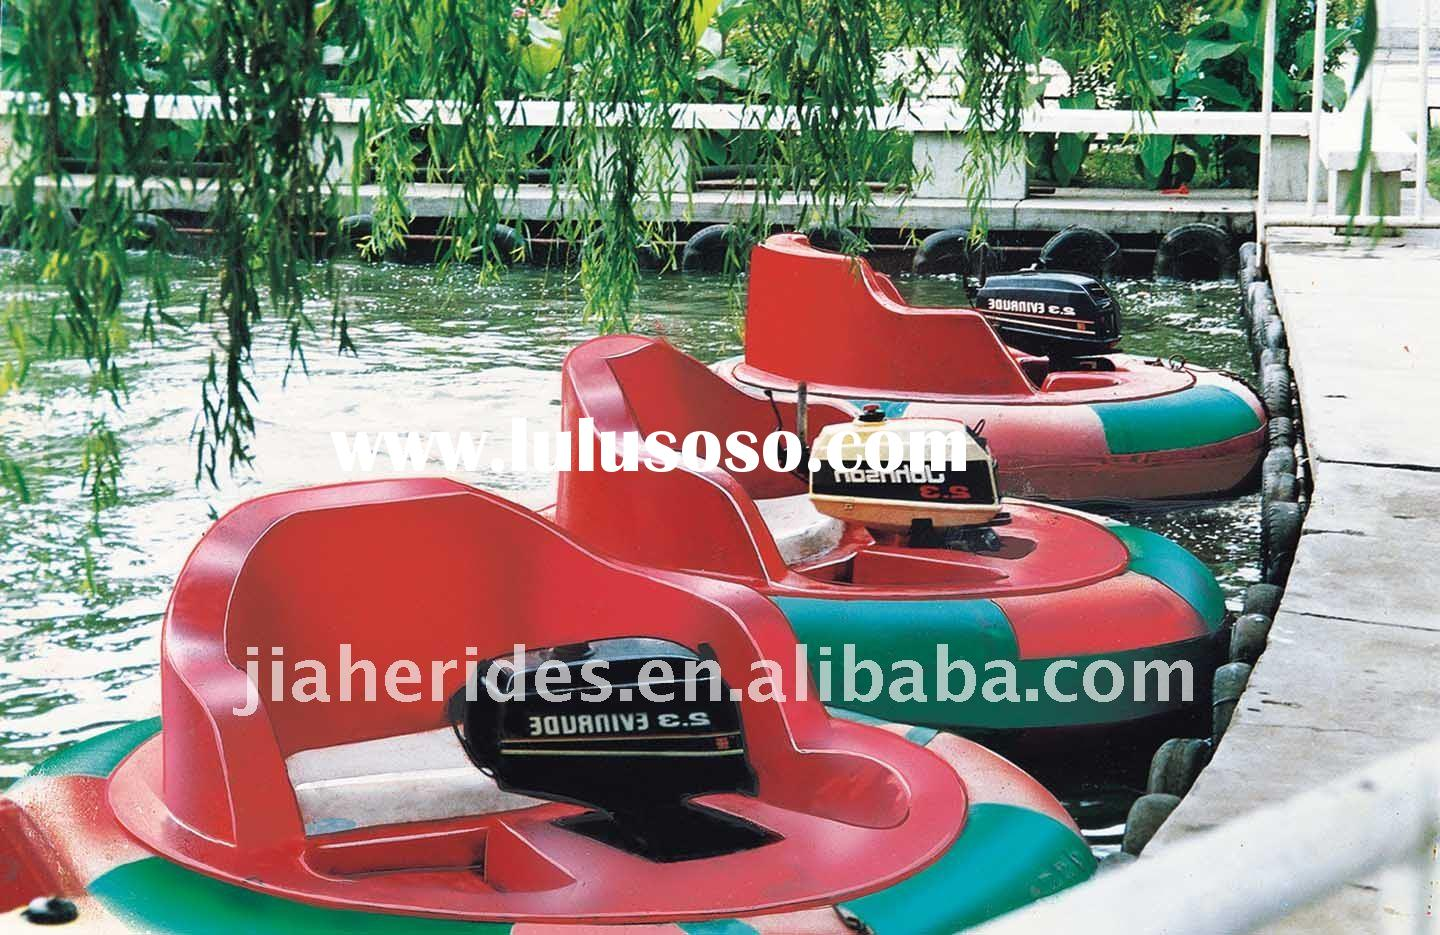 thrilling amusement park equipment bumper boat for sale